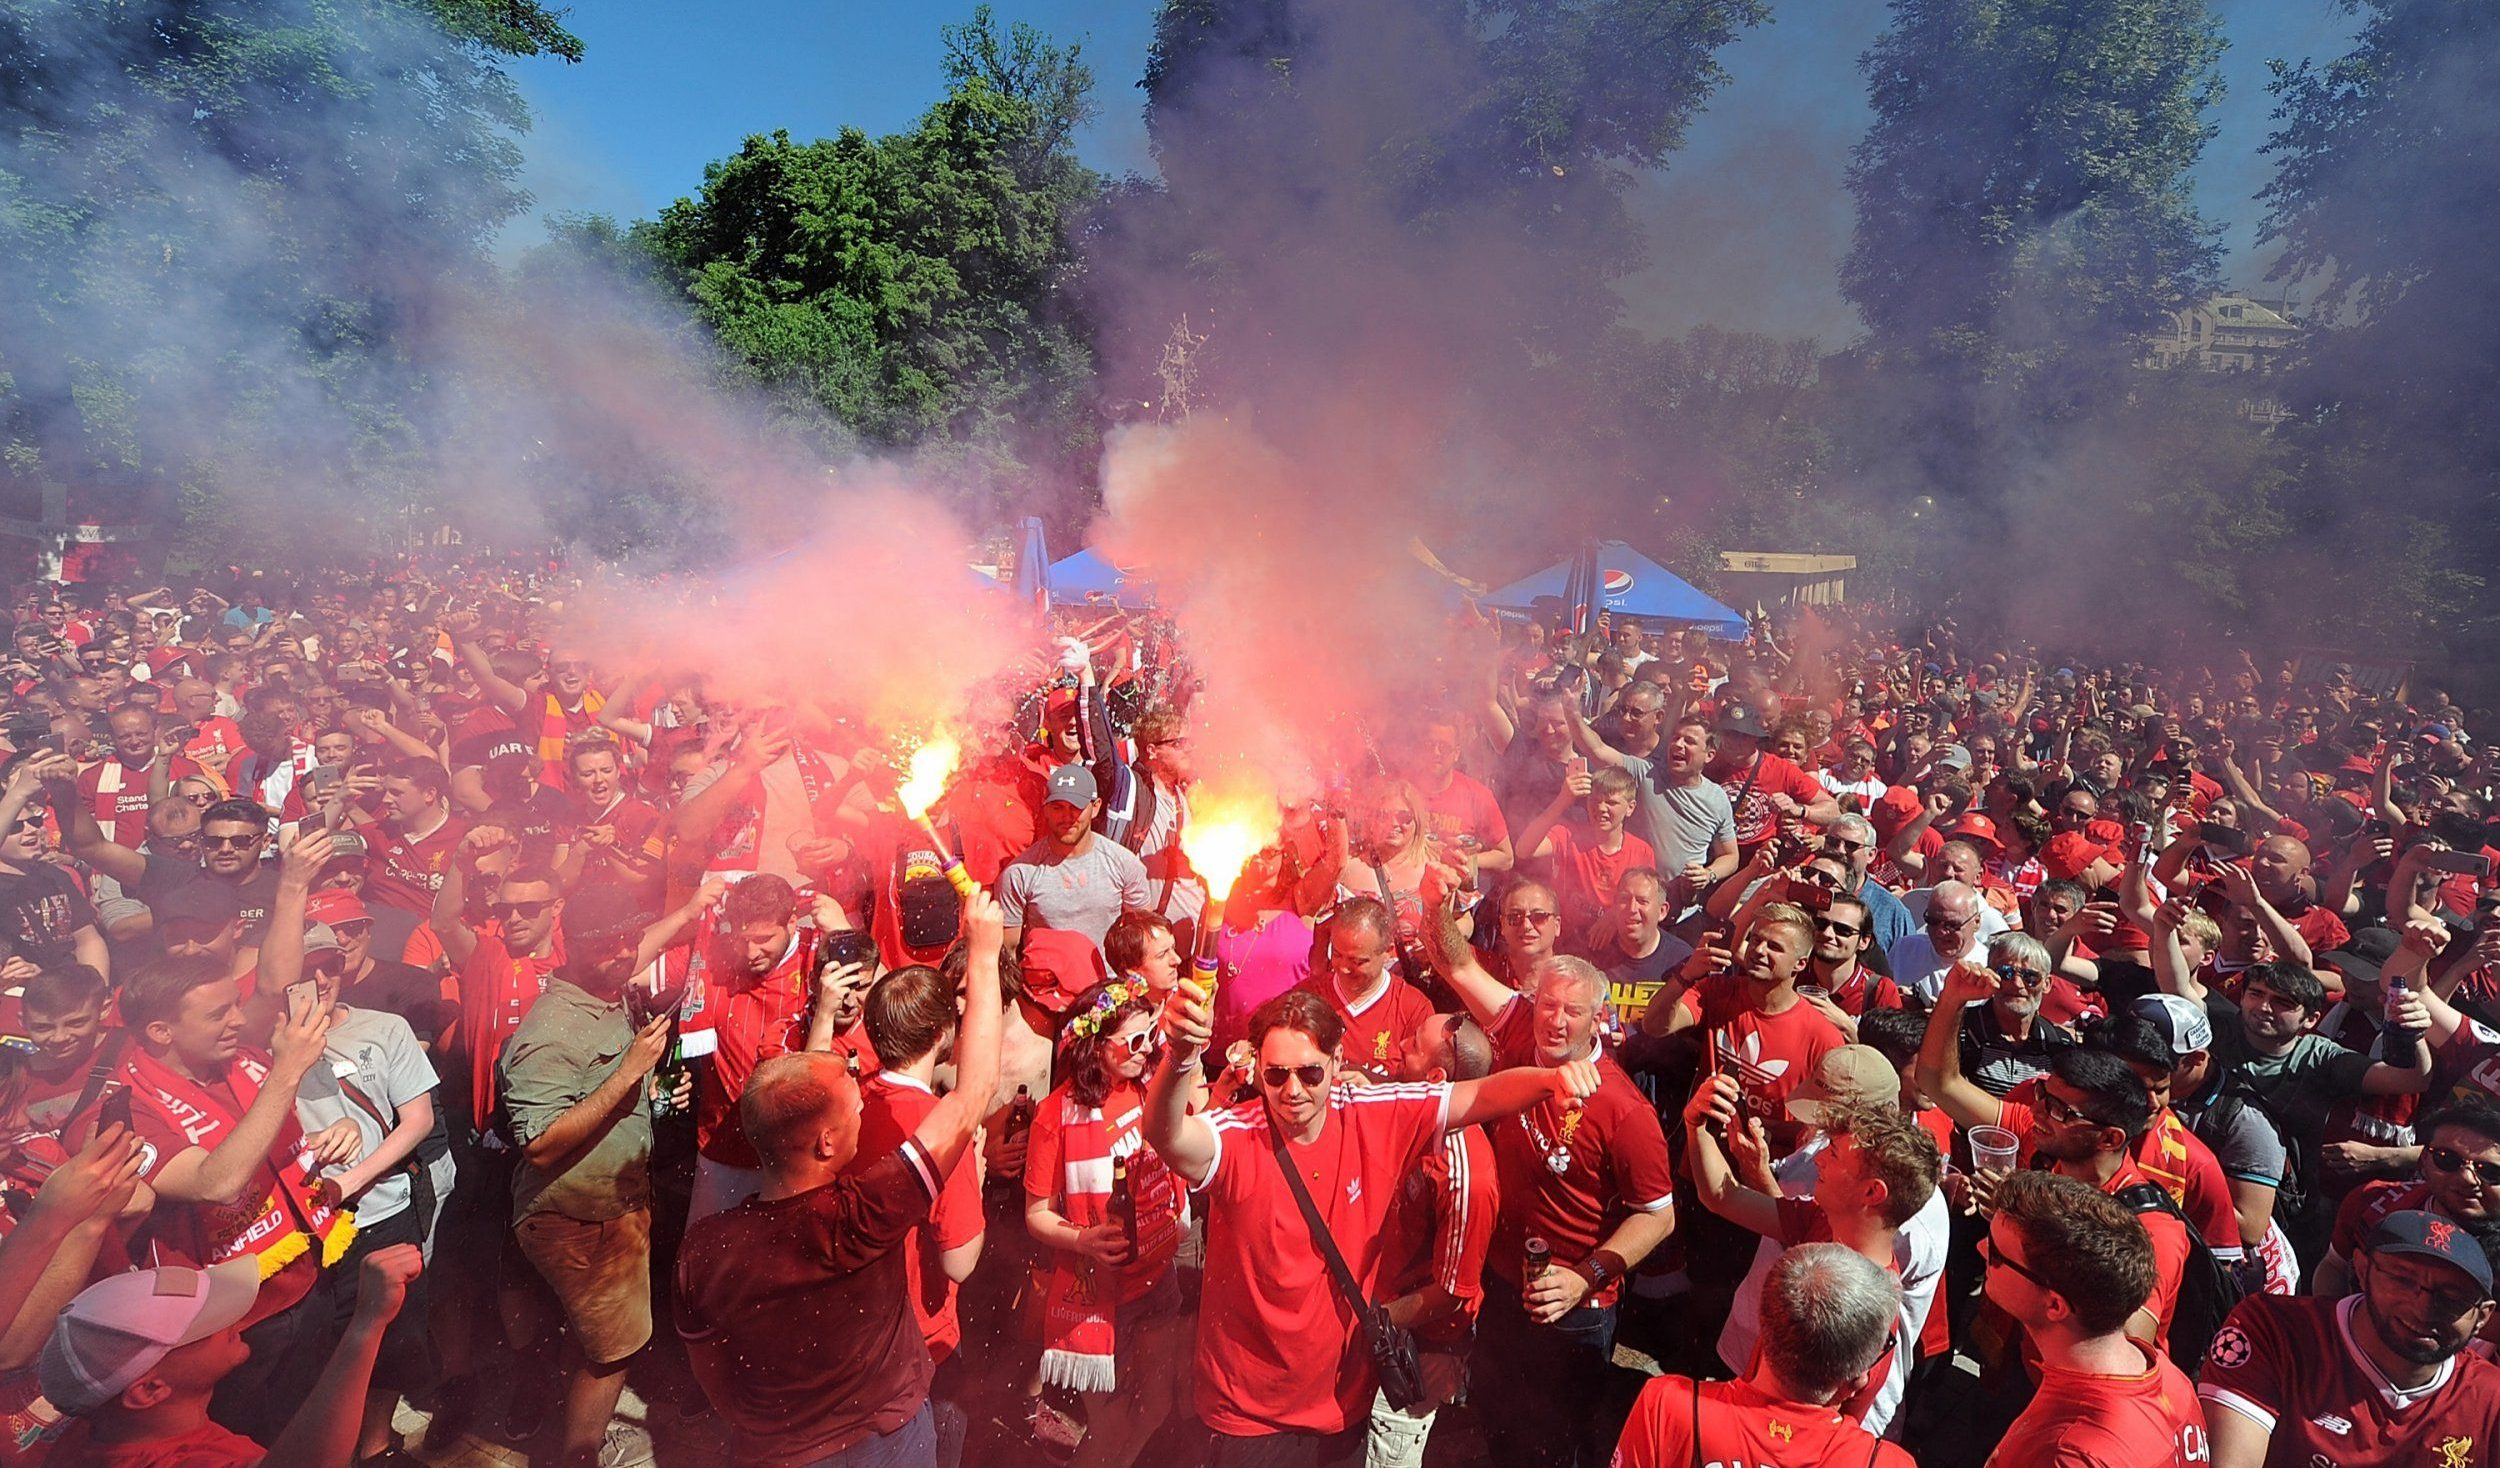 KIEV, UKRAINE - MAY 26: (THE SUN OUT, THE SUN ON SUDNAY OUT) Fans of Liverpool congregating in Shevchenko Park before the UEFA Champions League final between Real Madrid and Liverpool on May 26, 2018 in Kiev, Ukraine. (Photo by John Powell/Liverpool FC via Getty Images)